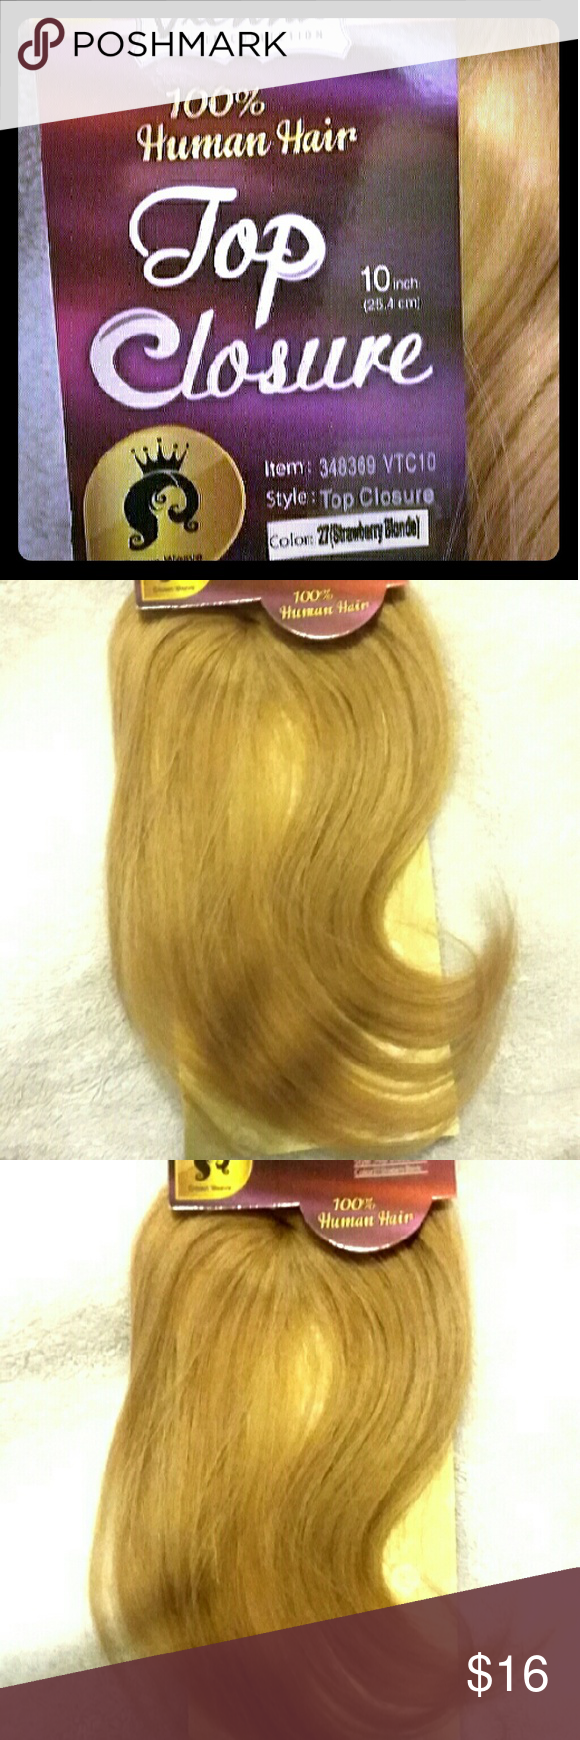 Brand New 100Human Hair Top Closure Weave Boutique 100